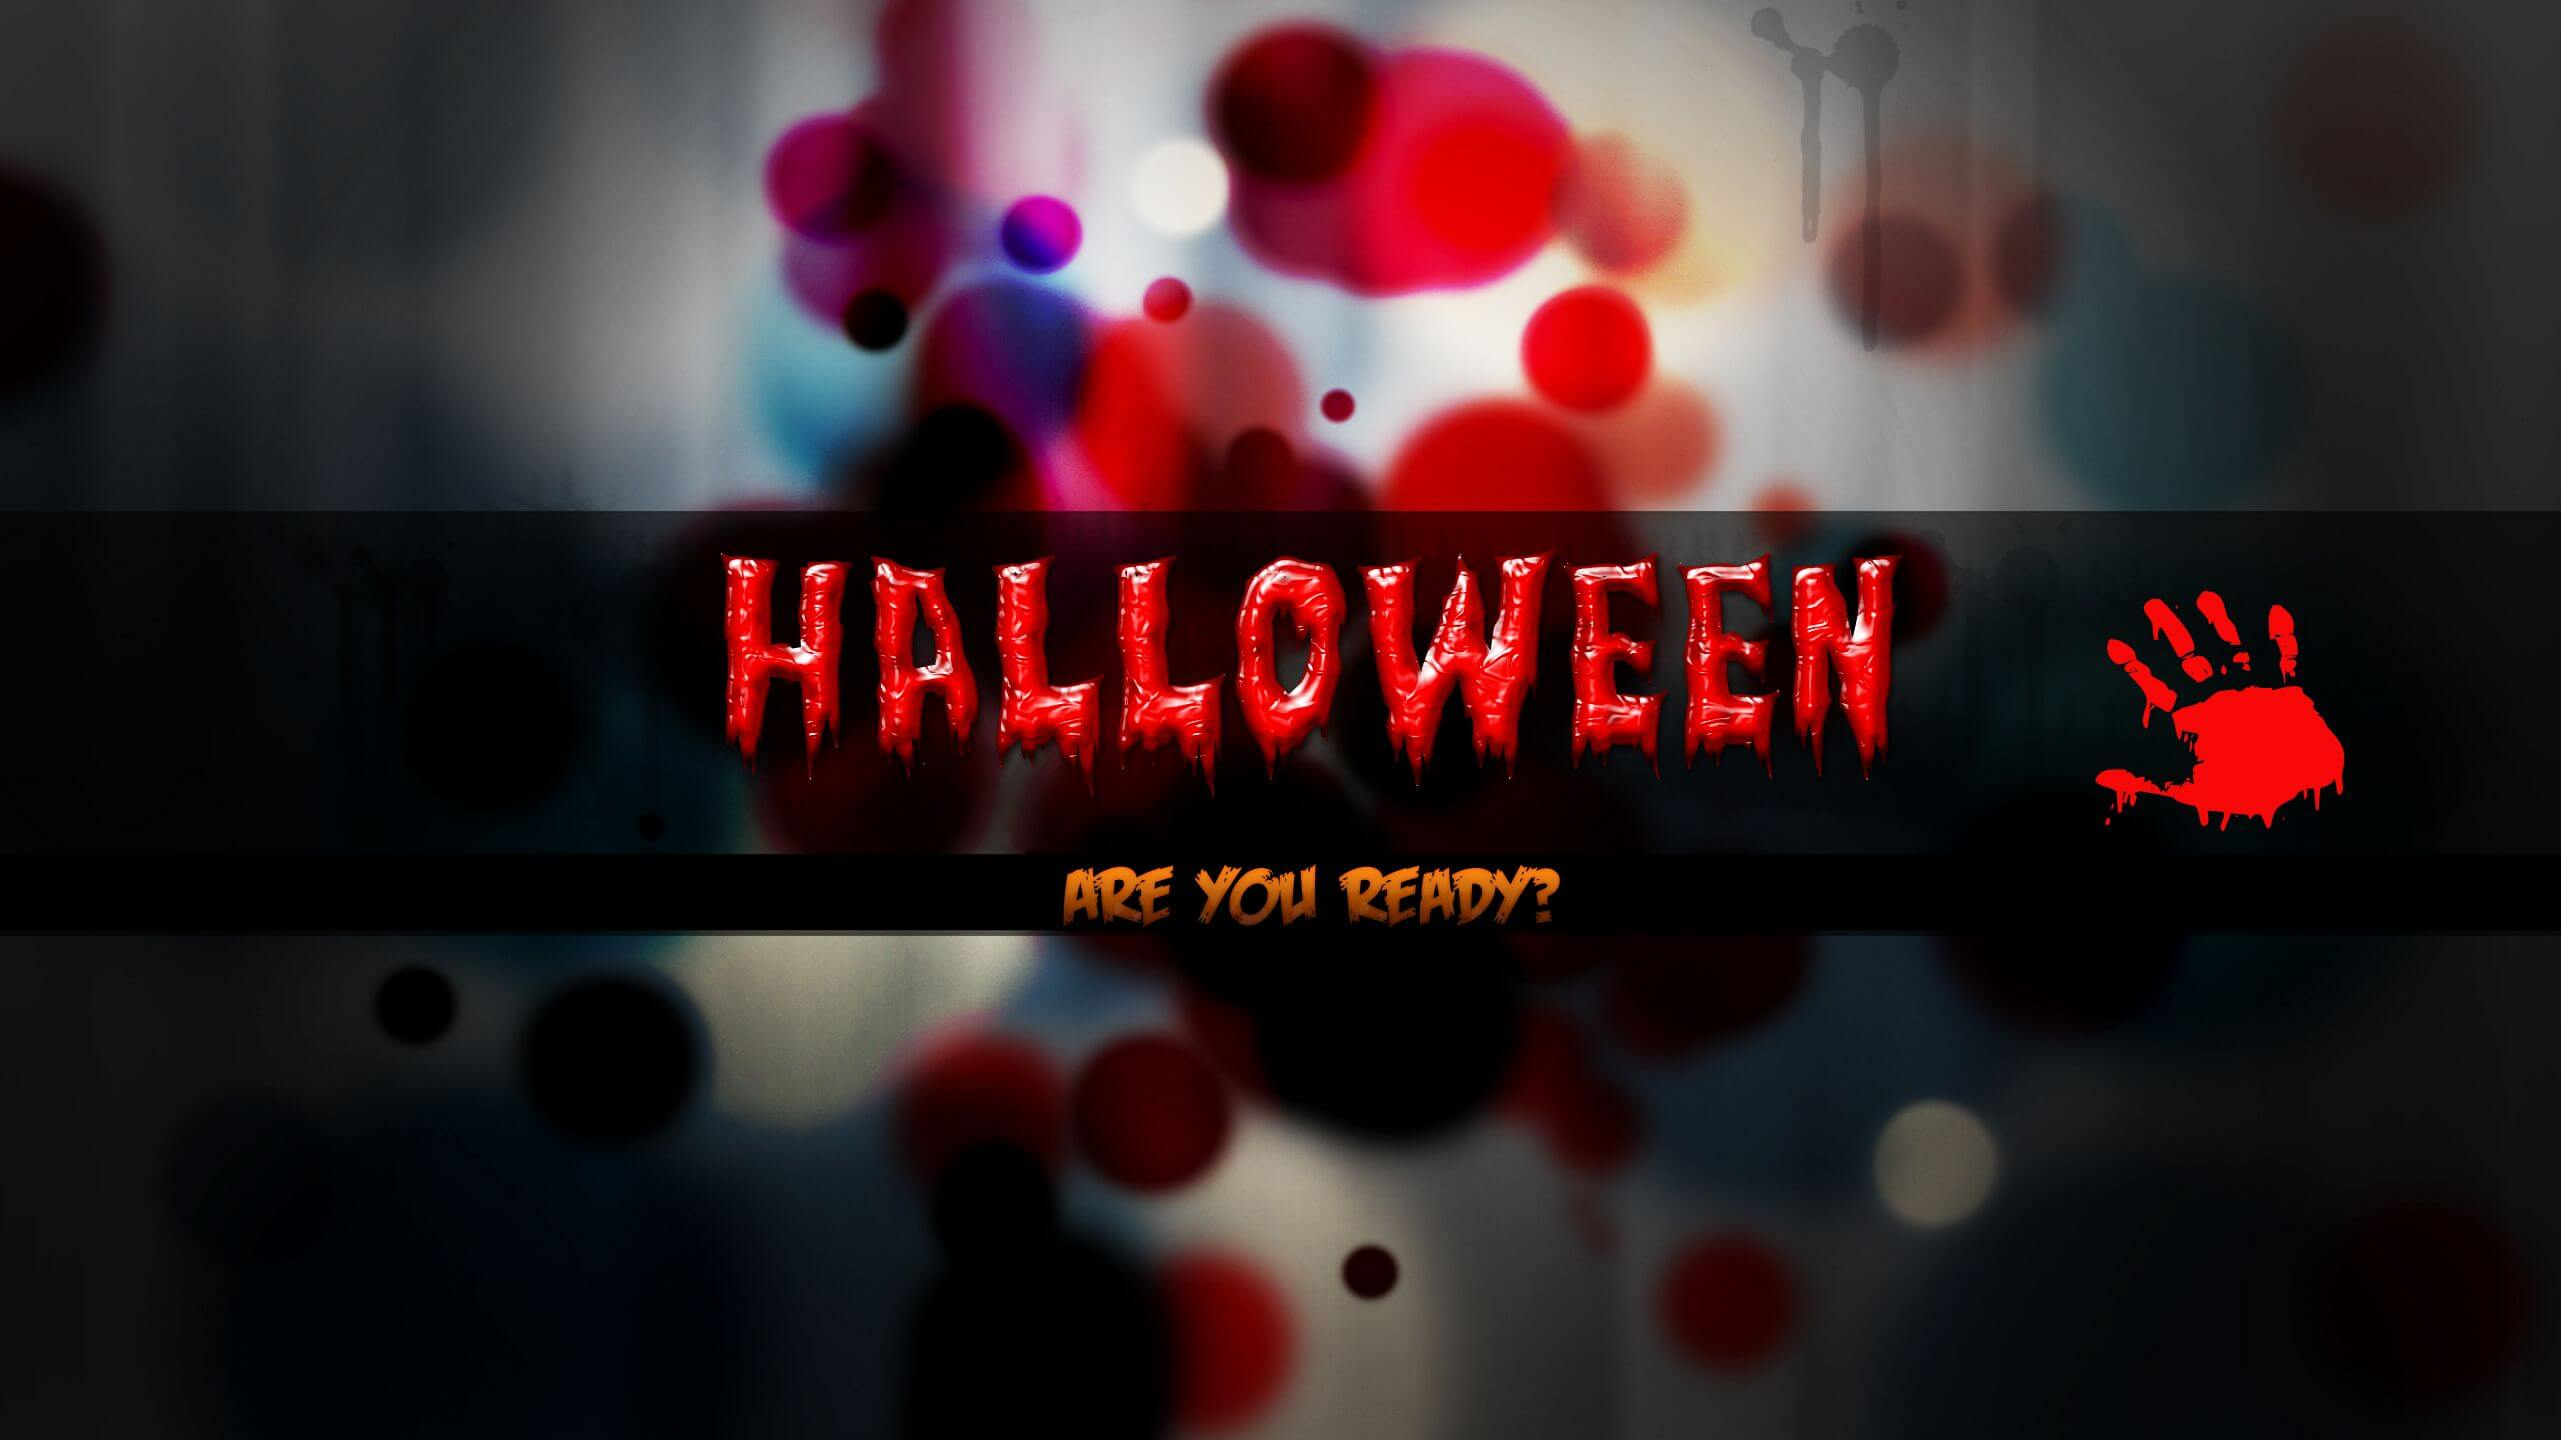 6-Ideas-For-Halloween-Campaigns-To-Boost-Sales-Part-2